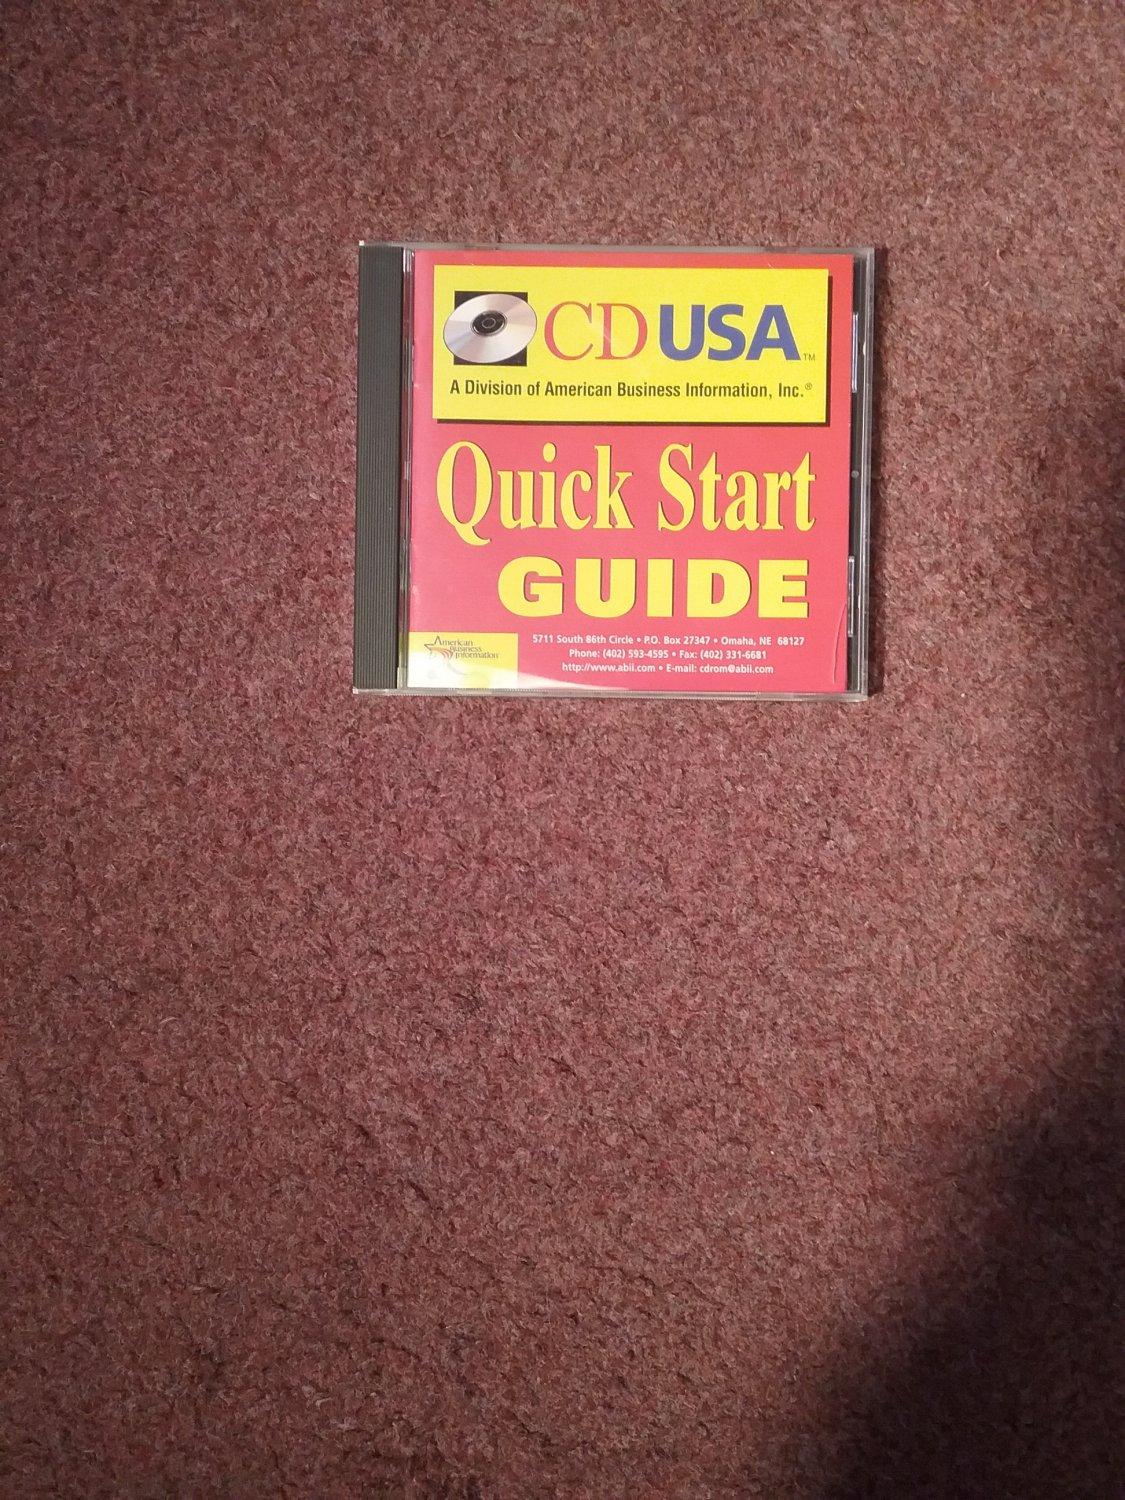 CD USA Quick Start Guide, Business Fax Number CD 0707161422